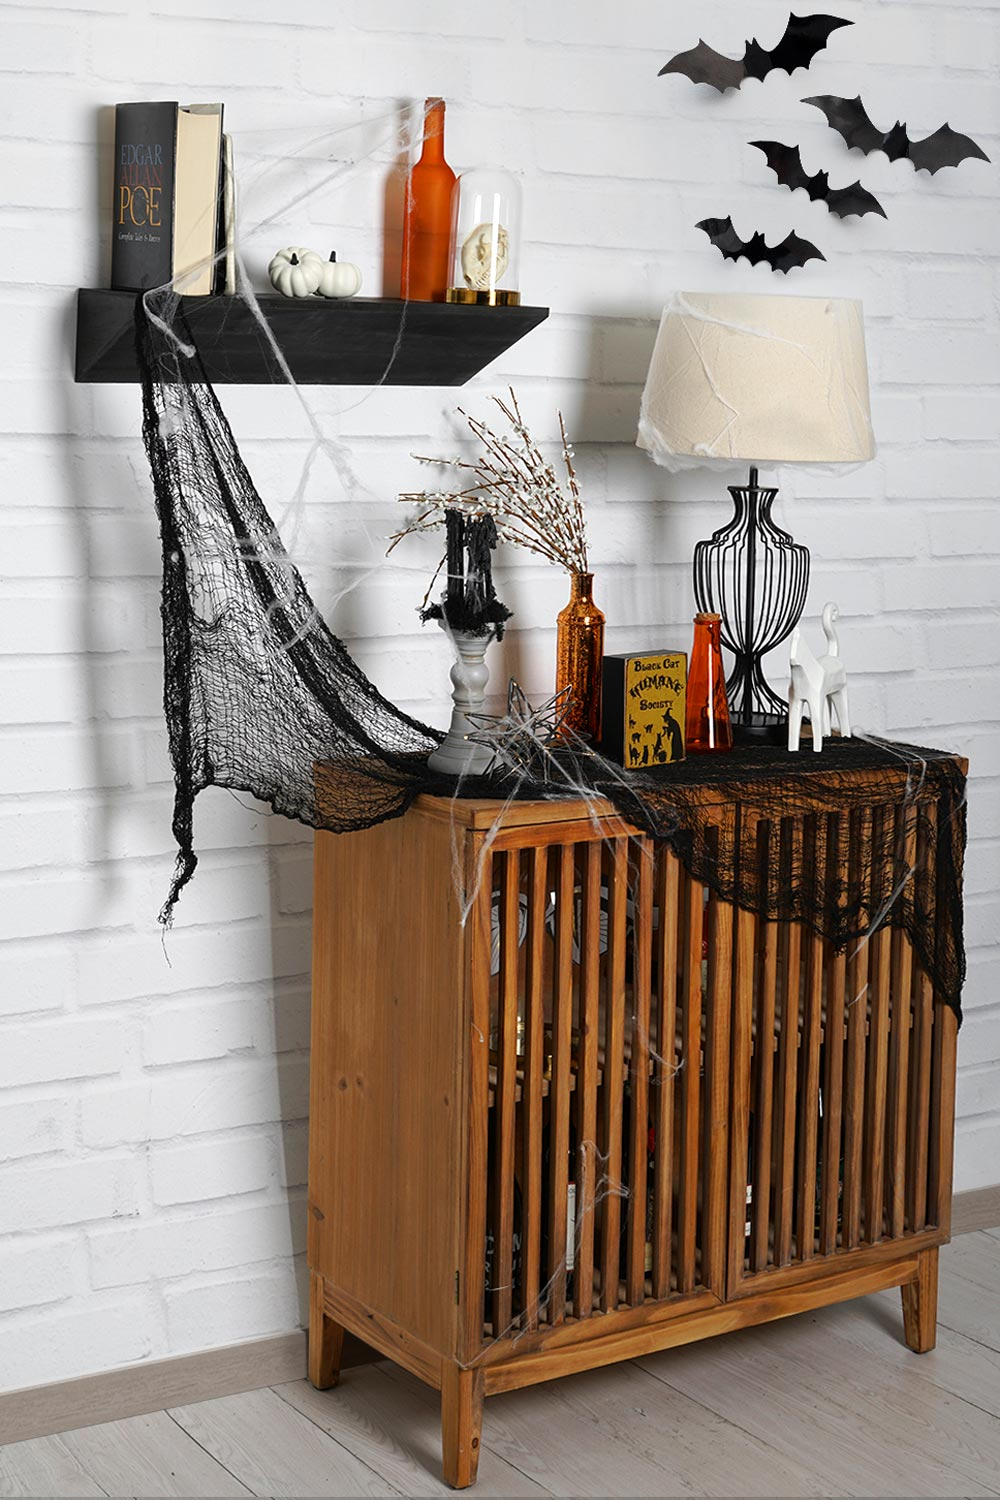 3/4 view of black wedge shelf with books and orange glass jars above a wood slated cabinet. Various Halloween decorations are on top of the cabinet and black bats are in upper right corner